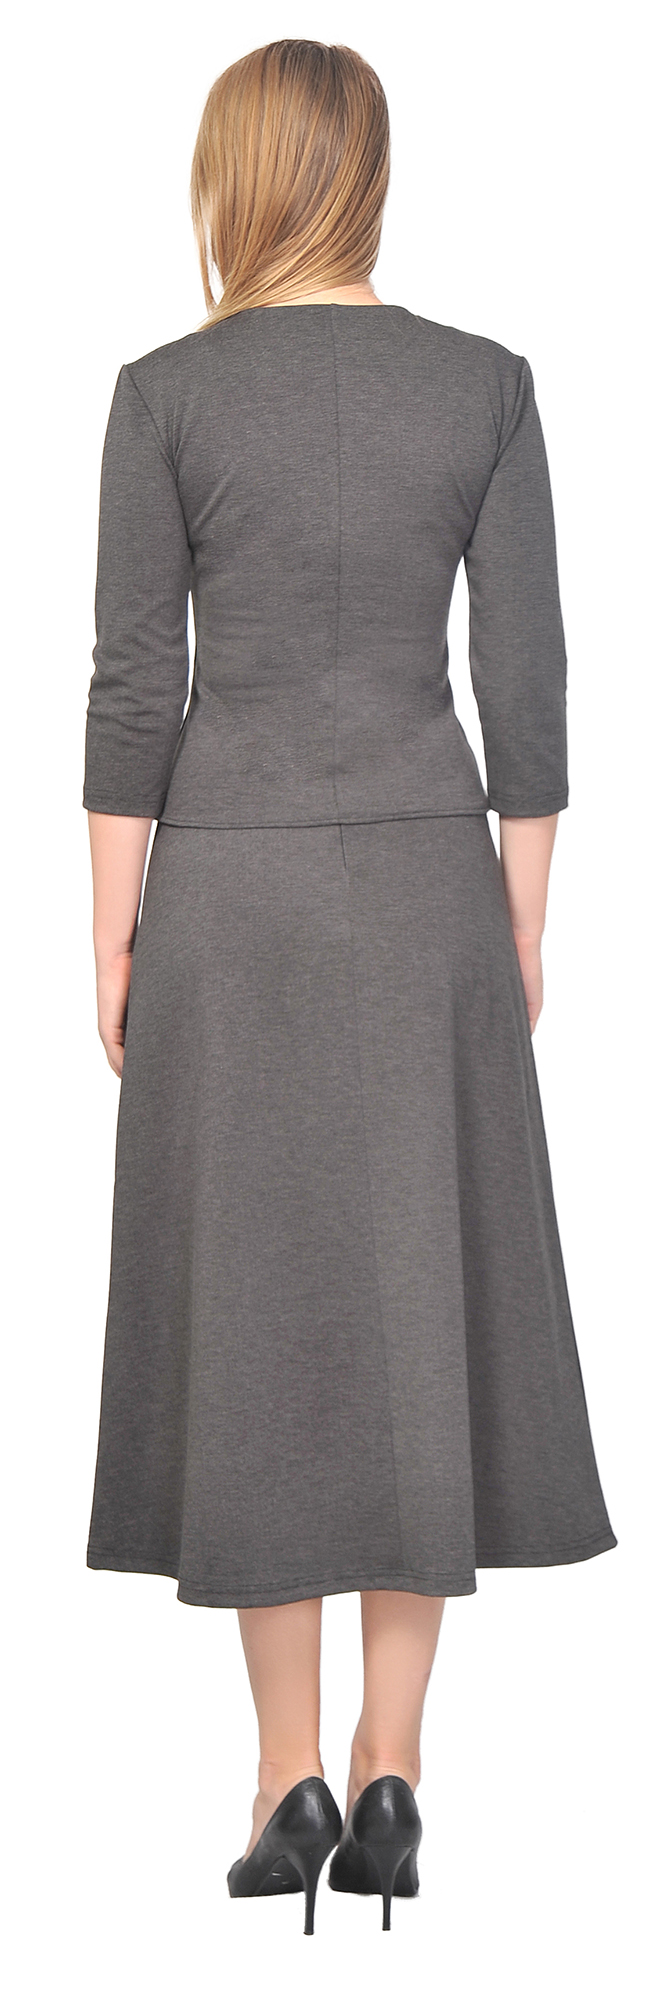 WOMEN'S TOP SHIRT A LINE MIDI SKIRT SUIT SET CASUAL OFFICE WORK ...